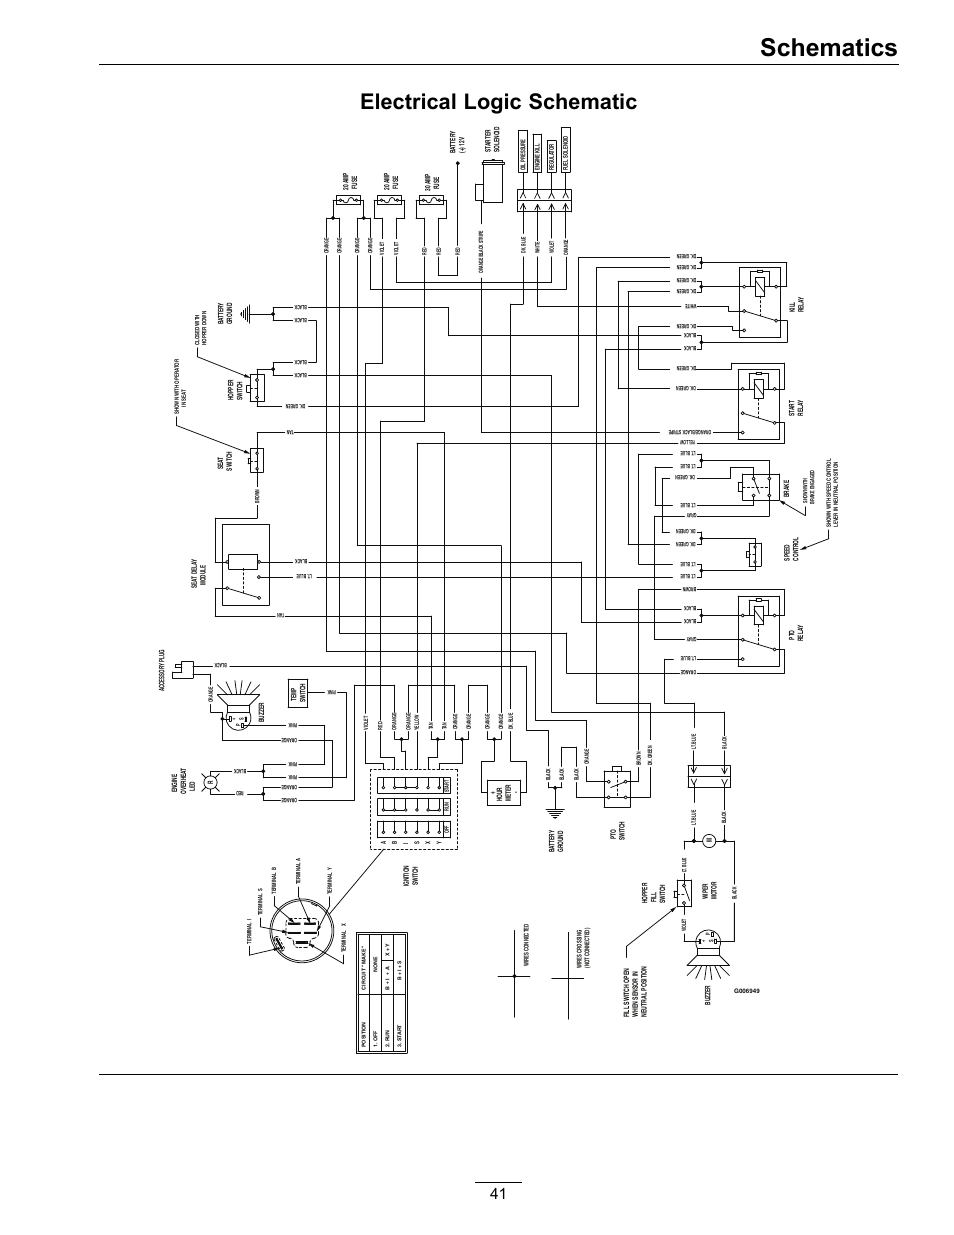 hight resolution of schematics electrical logic schematic exmark navigator 0 user manual page 41 48